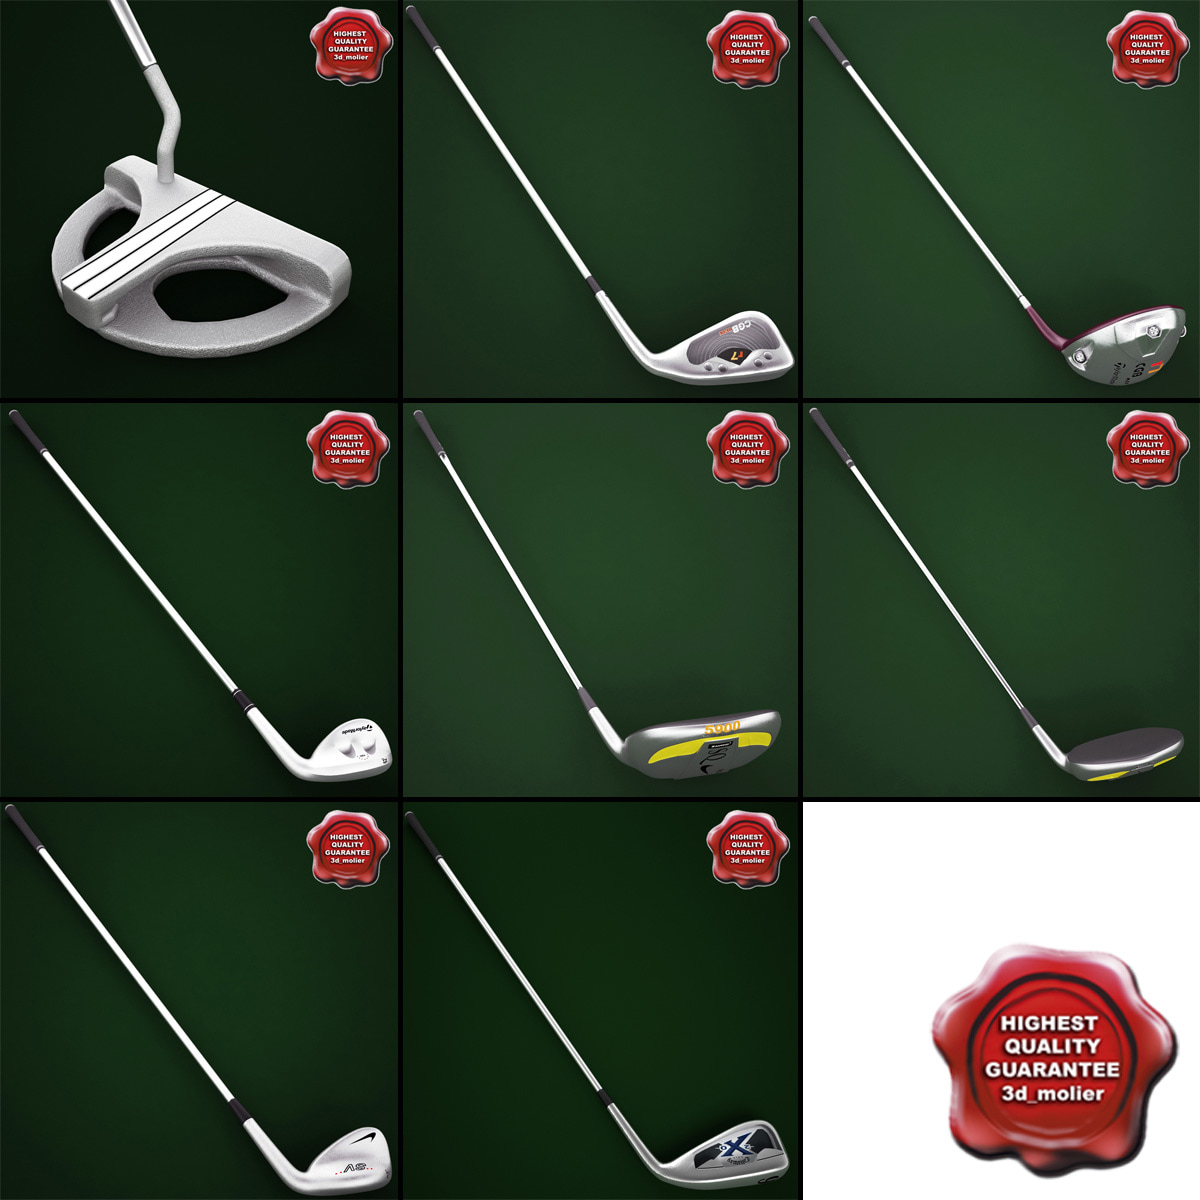 Golf_Sticks_Collection_V5_00.jpg